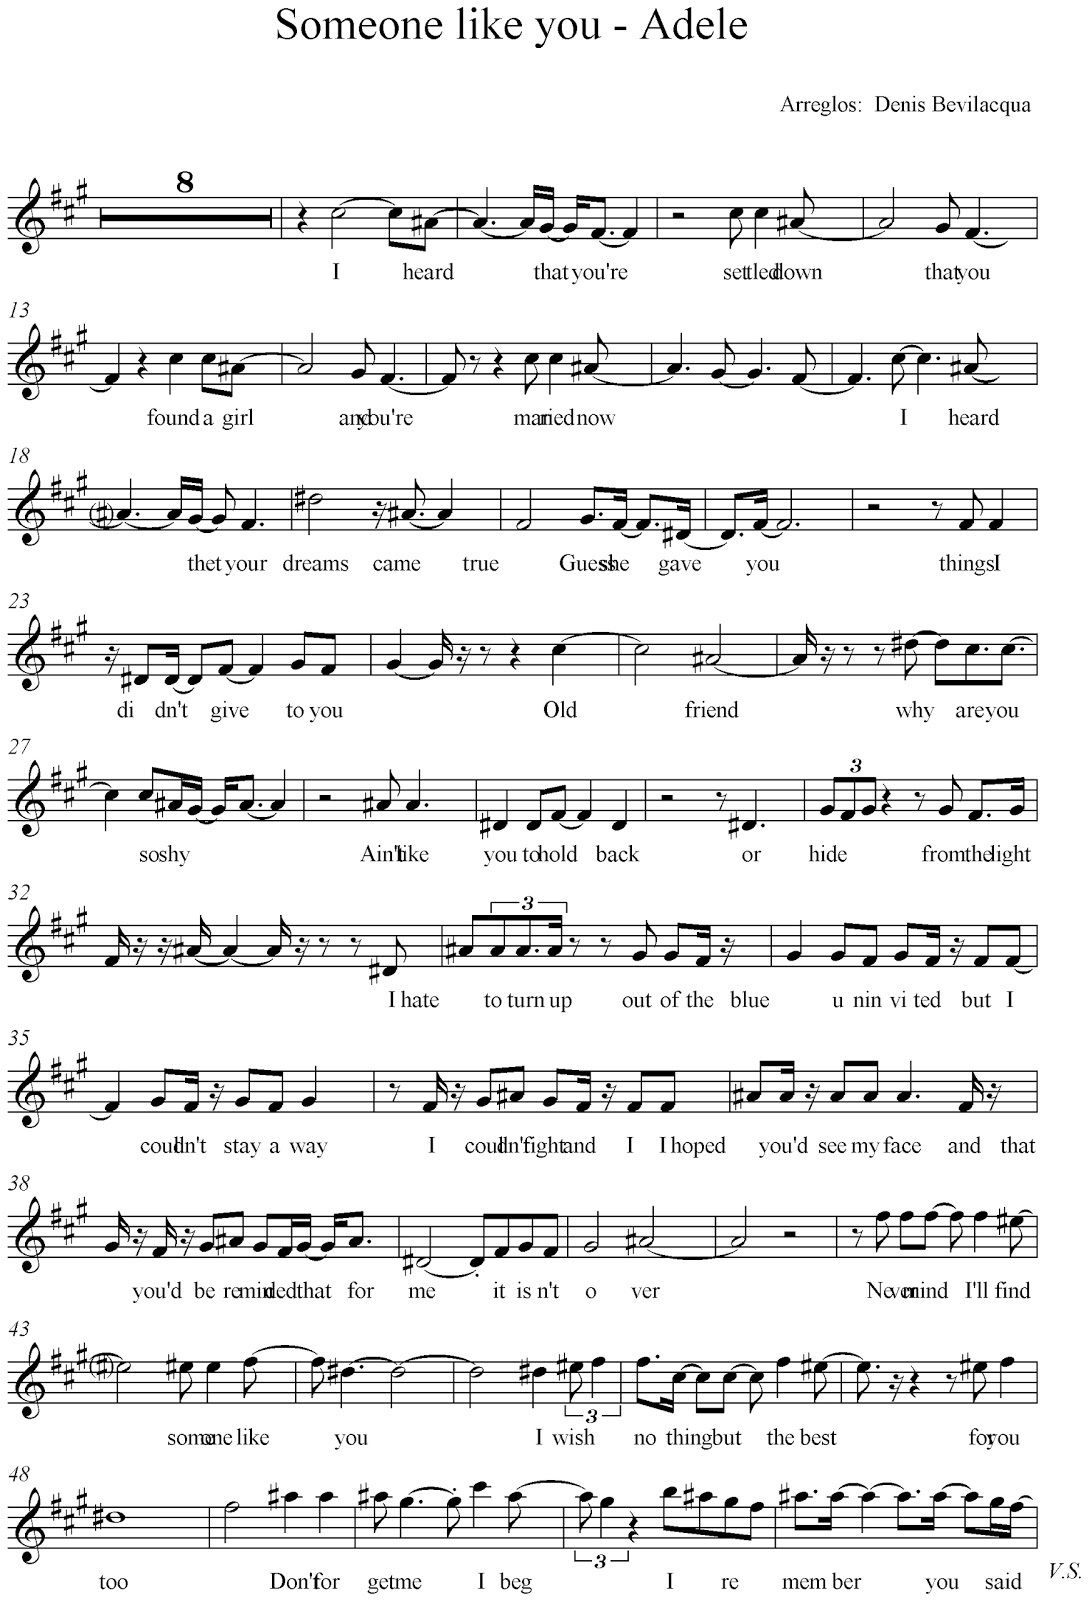 Someone Like You Music Sheets With Images Sheet Music Someone